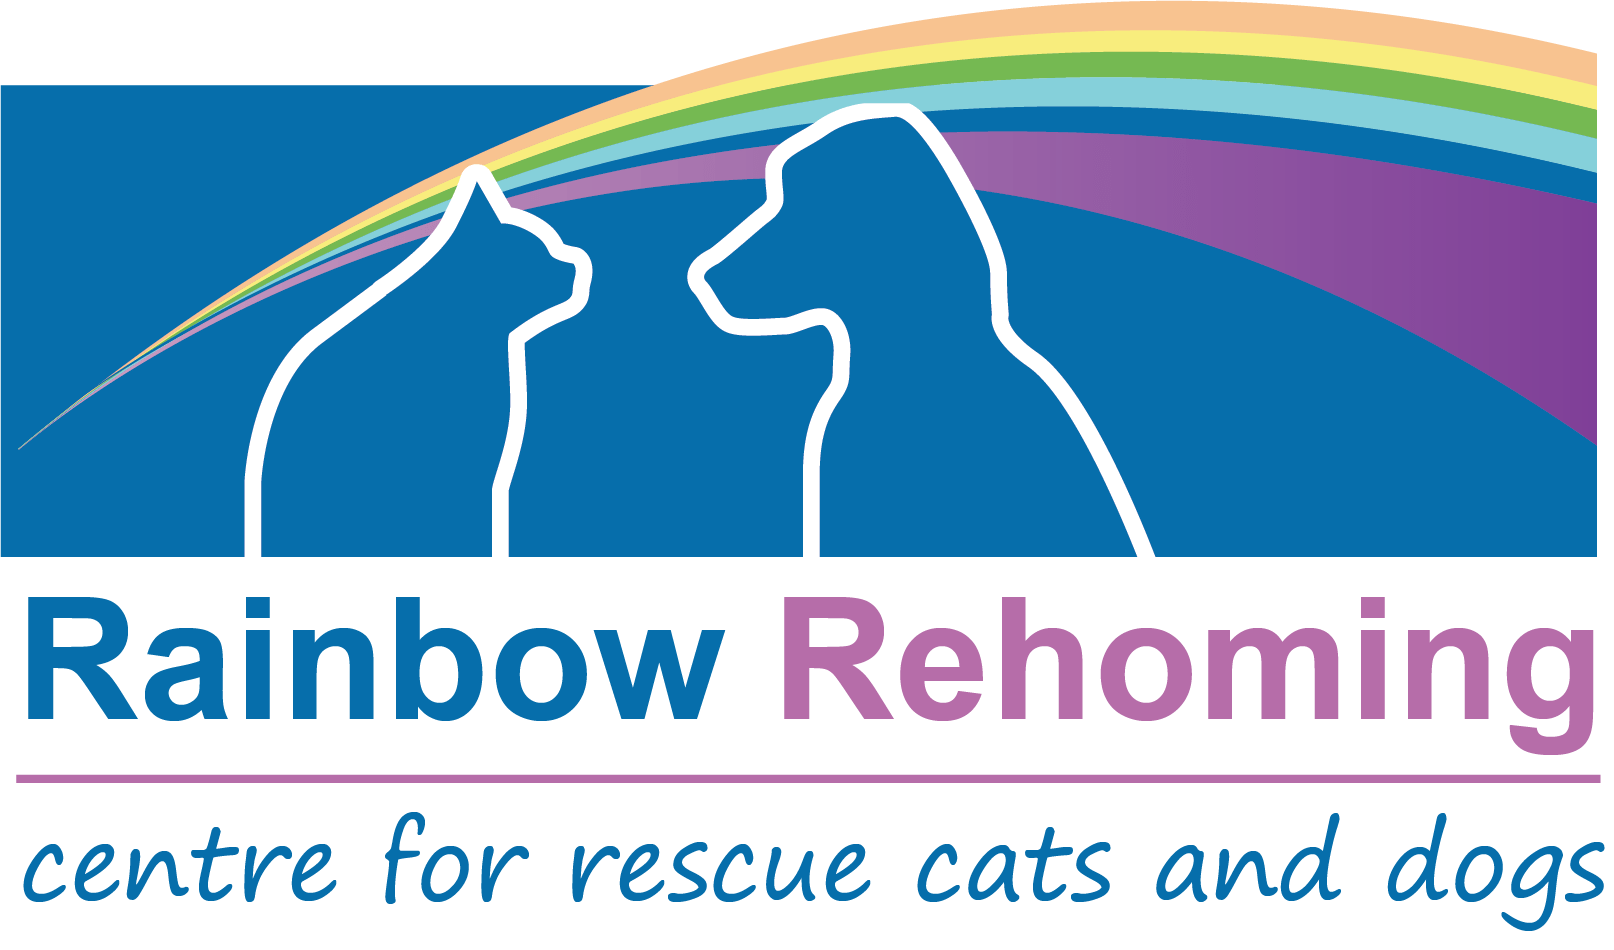 Rainbow rehoming Centre Logo